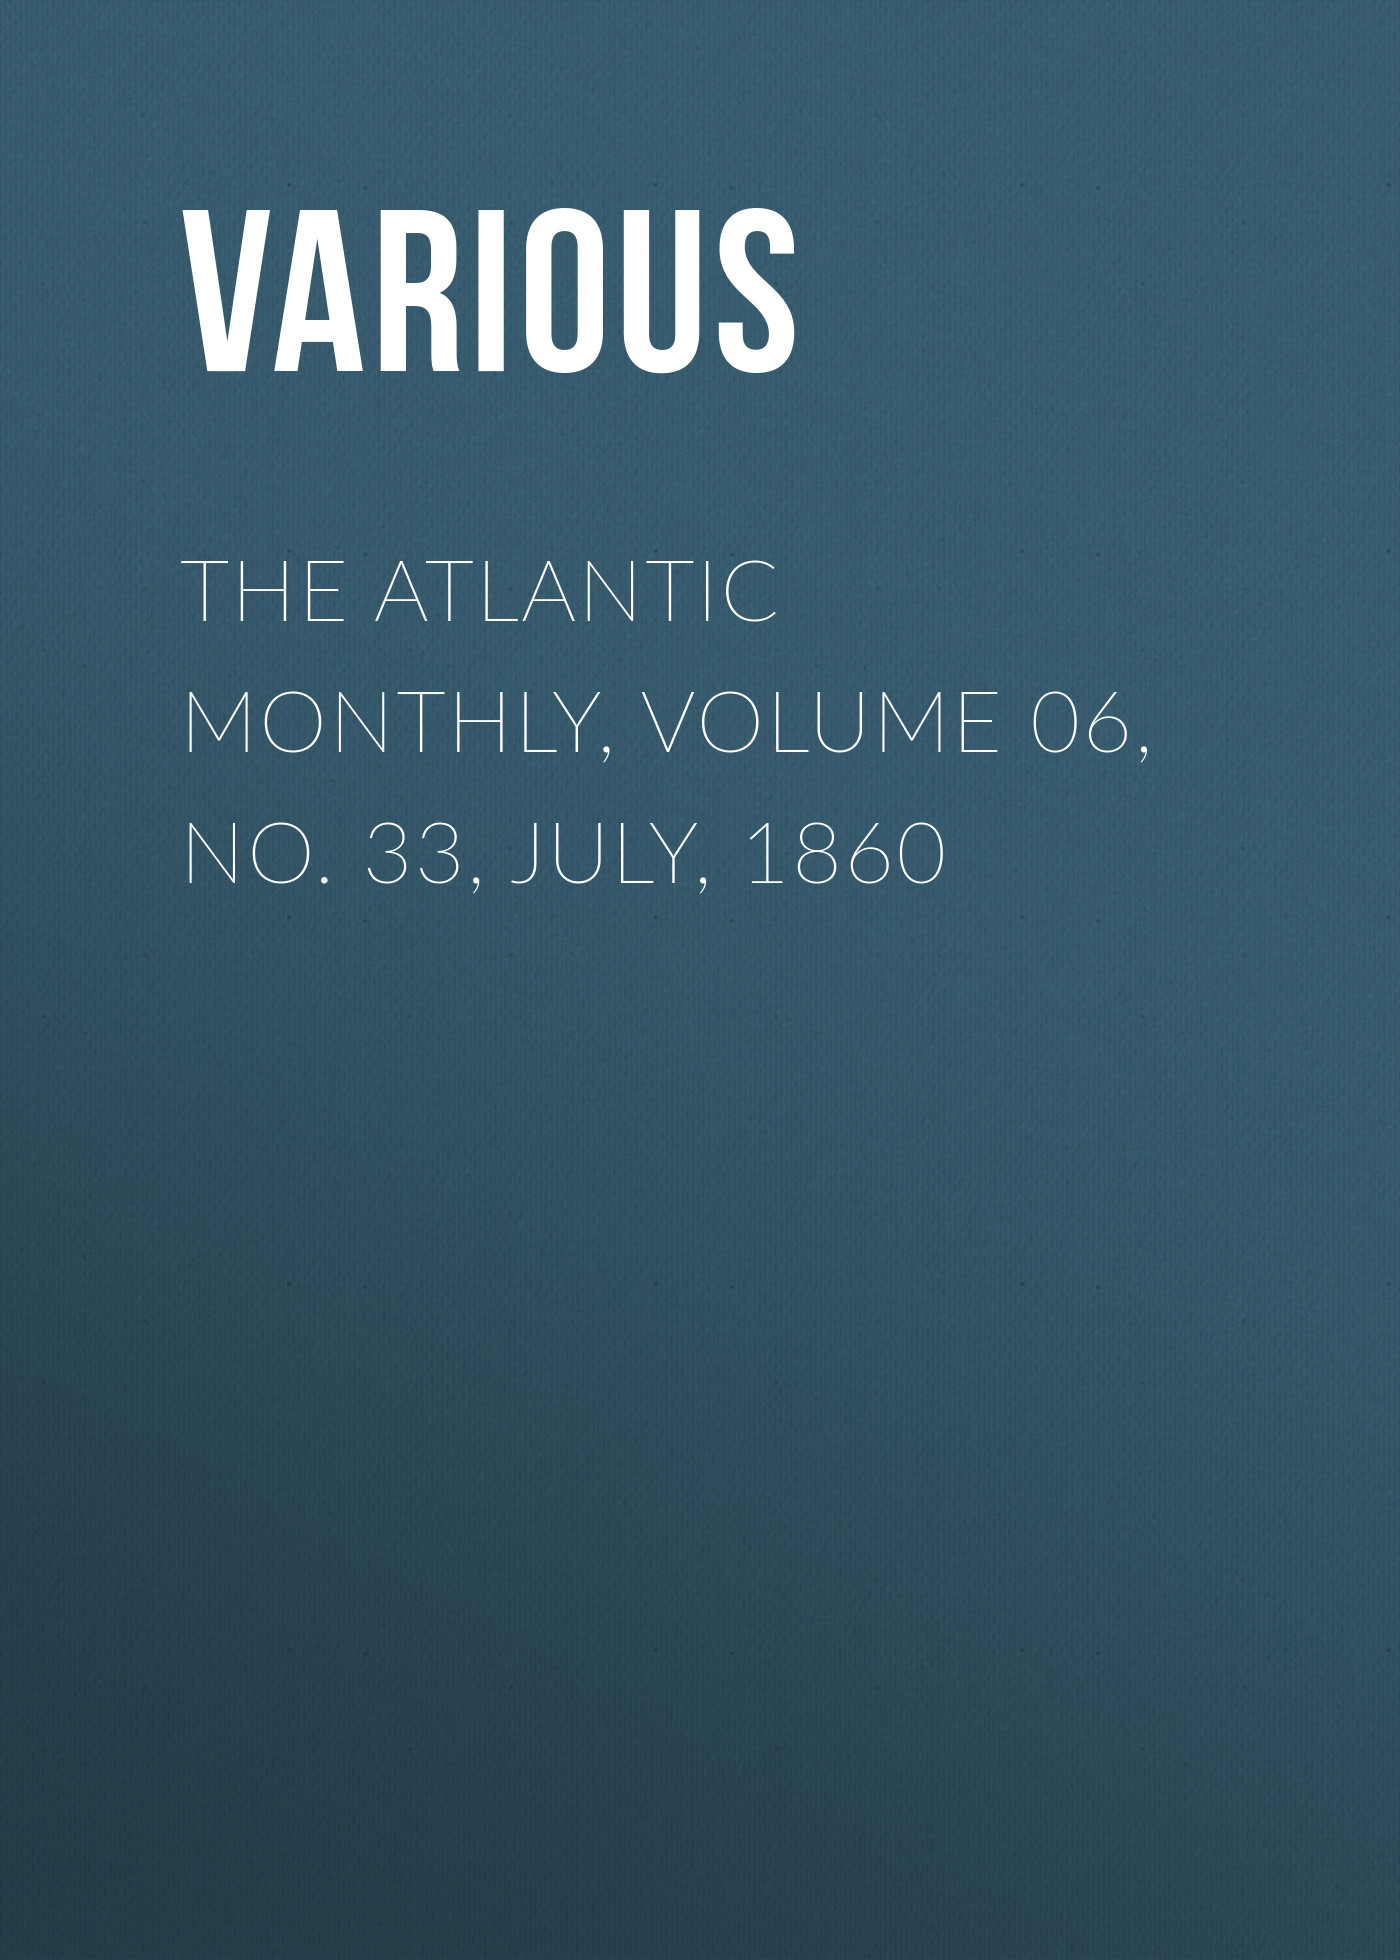 Various The Atlantic Monthly, Volume 06, No. 33, July, 1860 various harper s new monthly magazine volume 1 no 2 july 1850